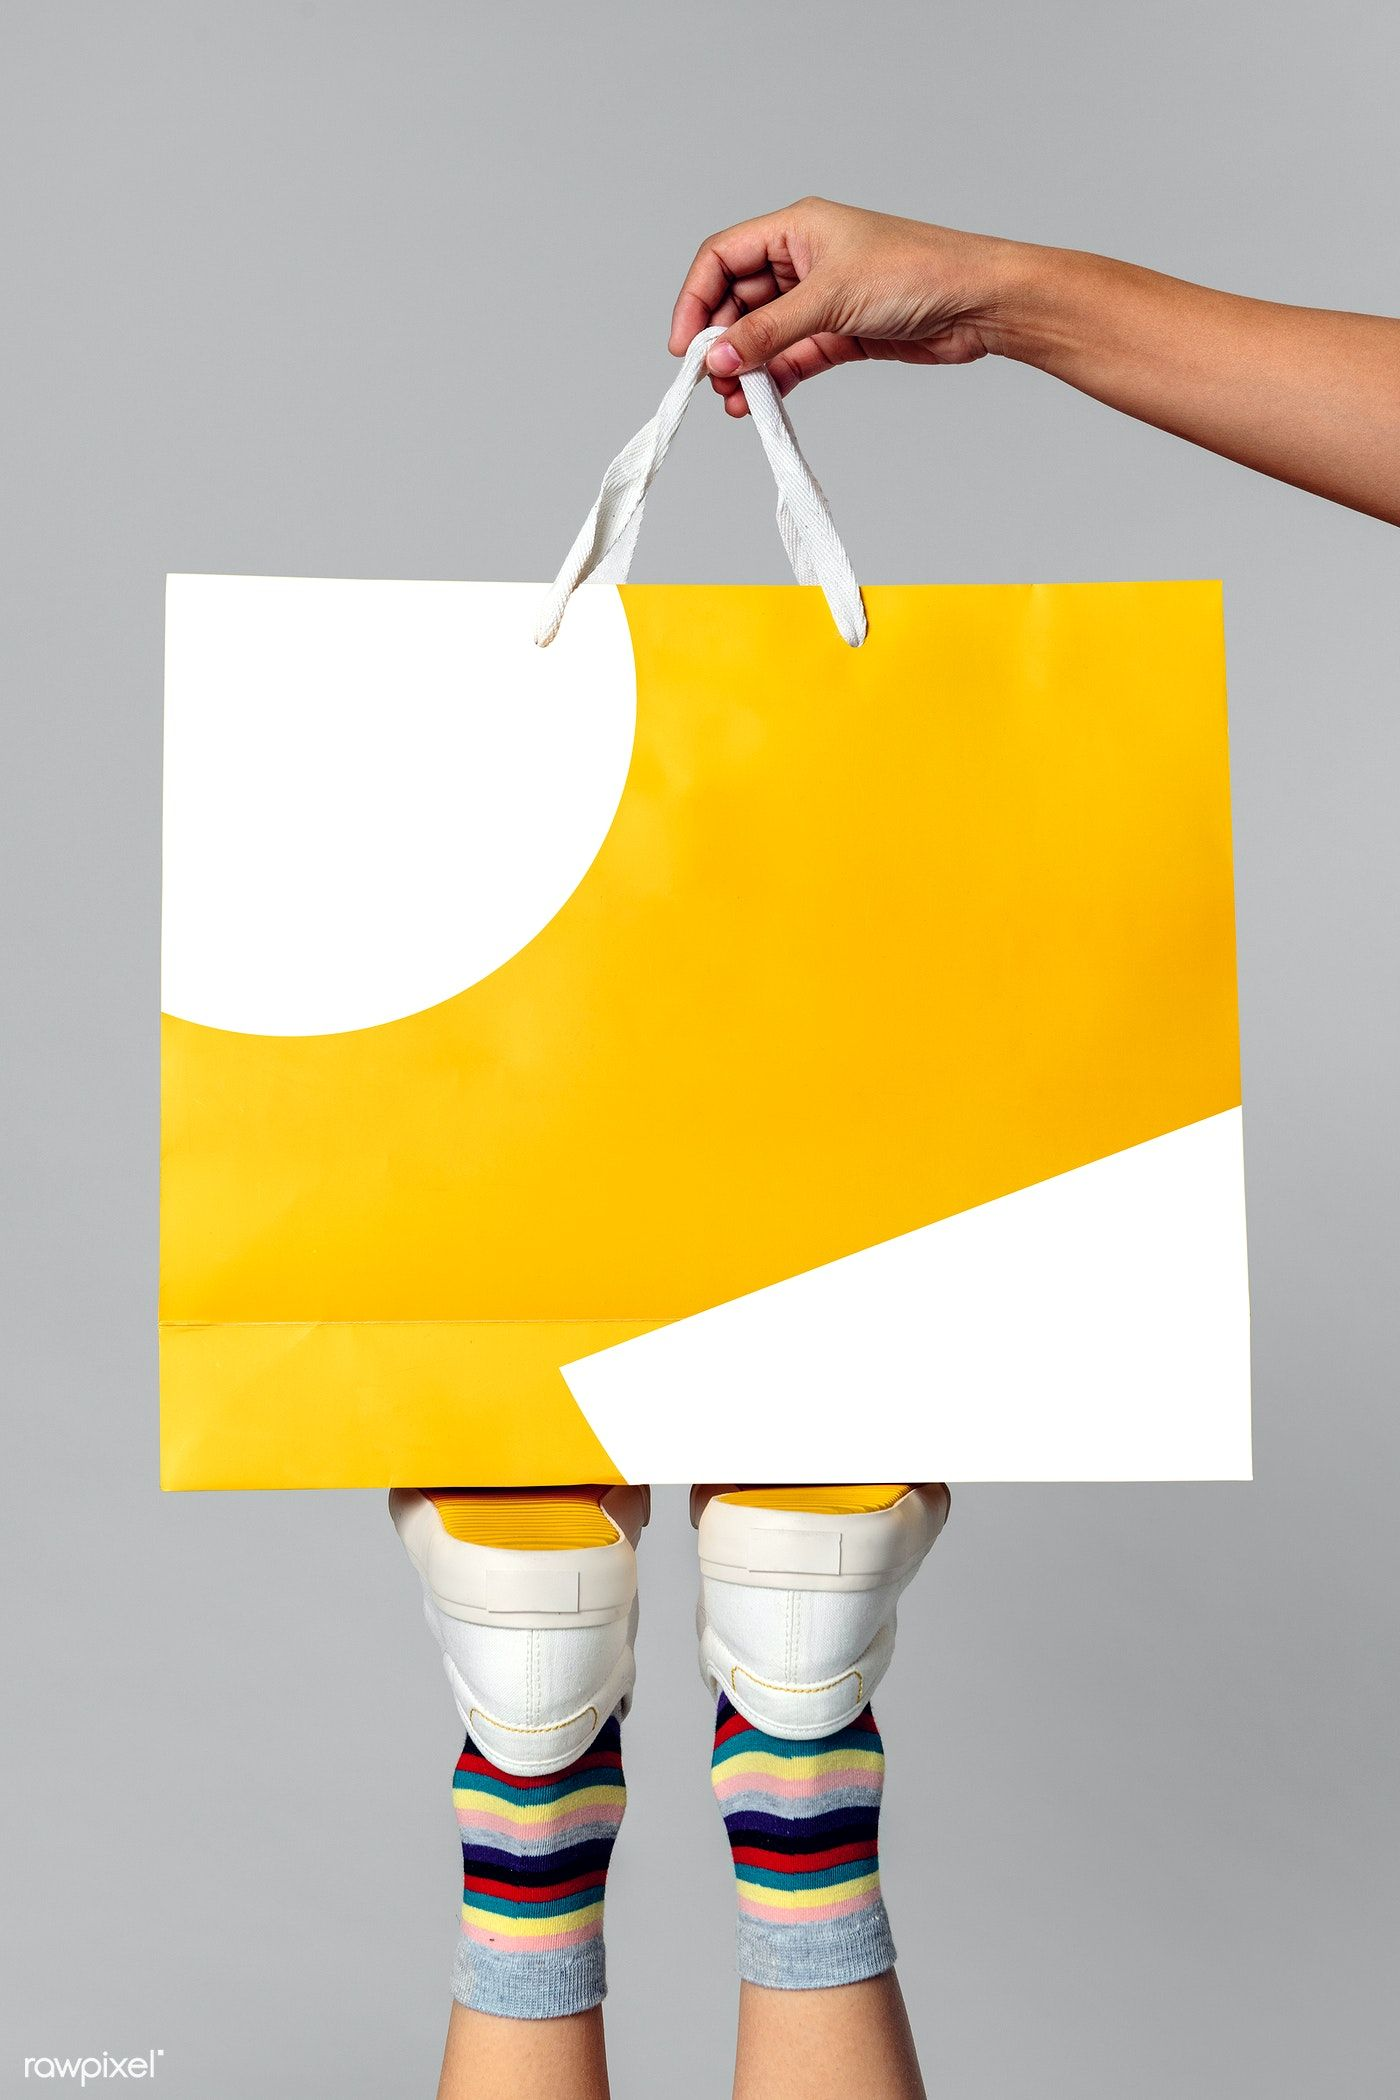 Download Download Premium Psd Of Woman Carrying A Shopping Bag Mockup 2287511 In 2020 Bag Mockup Bags Shopping Bag